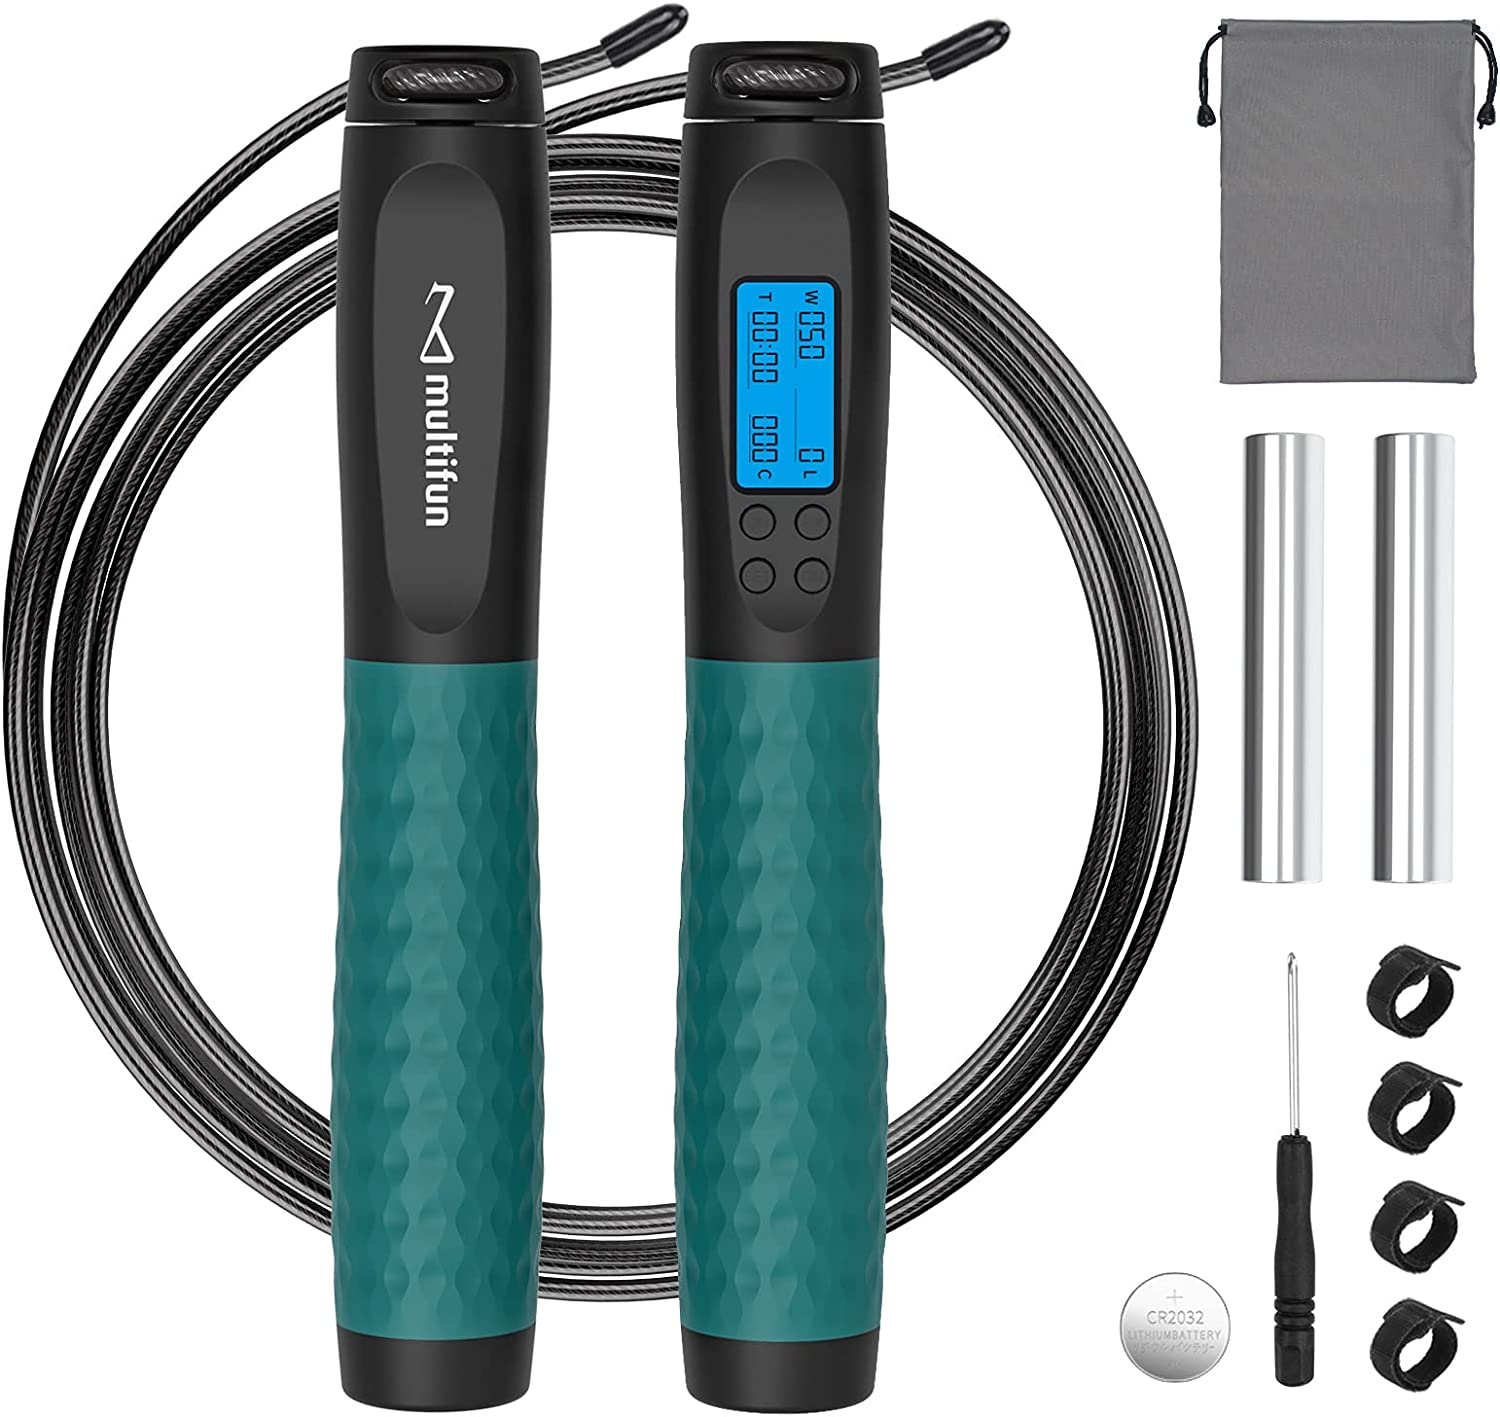 Jump Rope, Multifun Weighted Jump Rope with Counter, Workout Jumping Rope with with Steel Ball Bearings, Heavy Handles, Adjustable Length Speed Skipping Rope for Men Women Kids Fitness Exercise : Everything Else